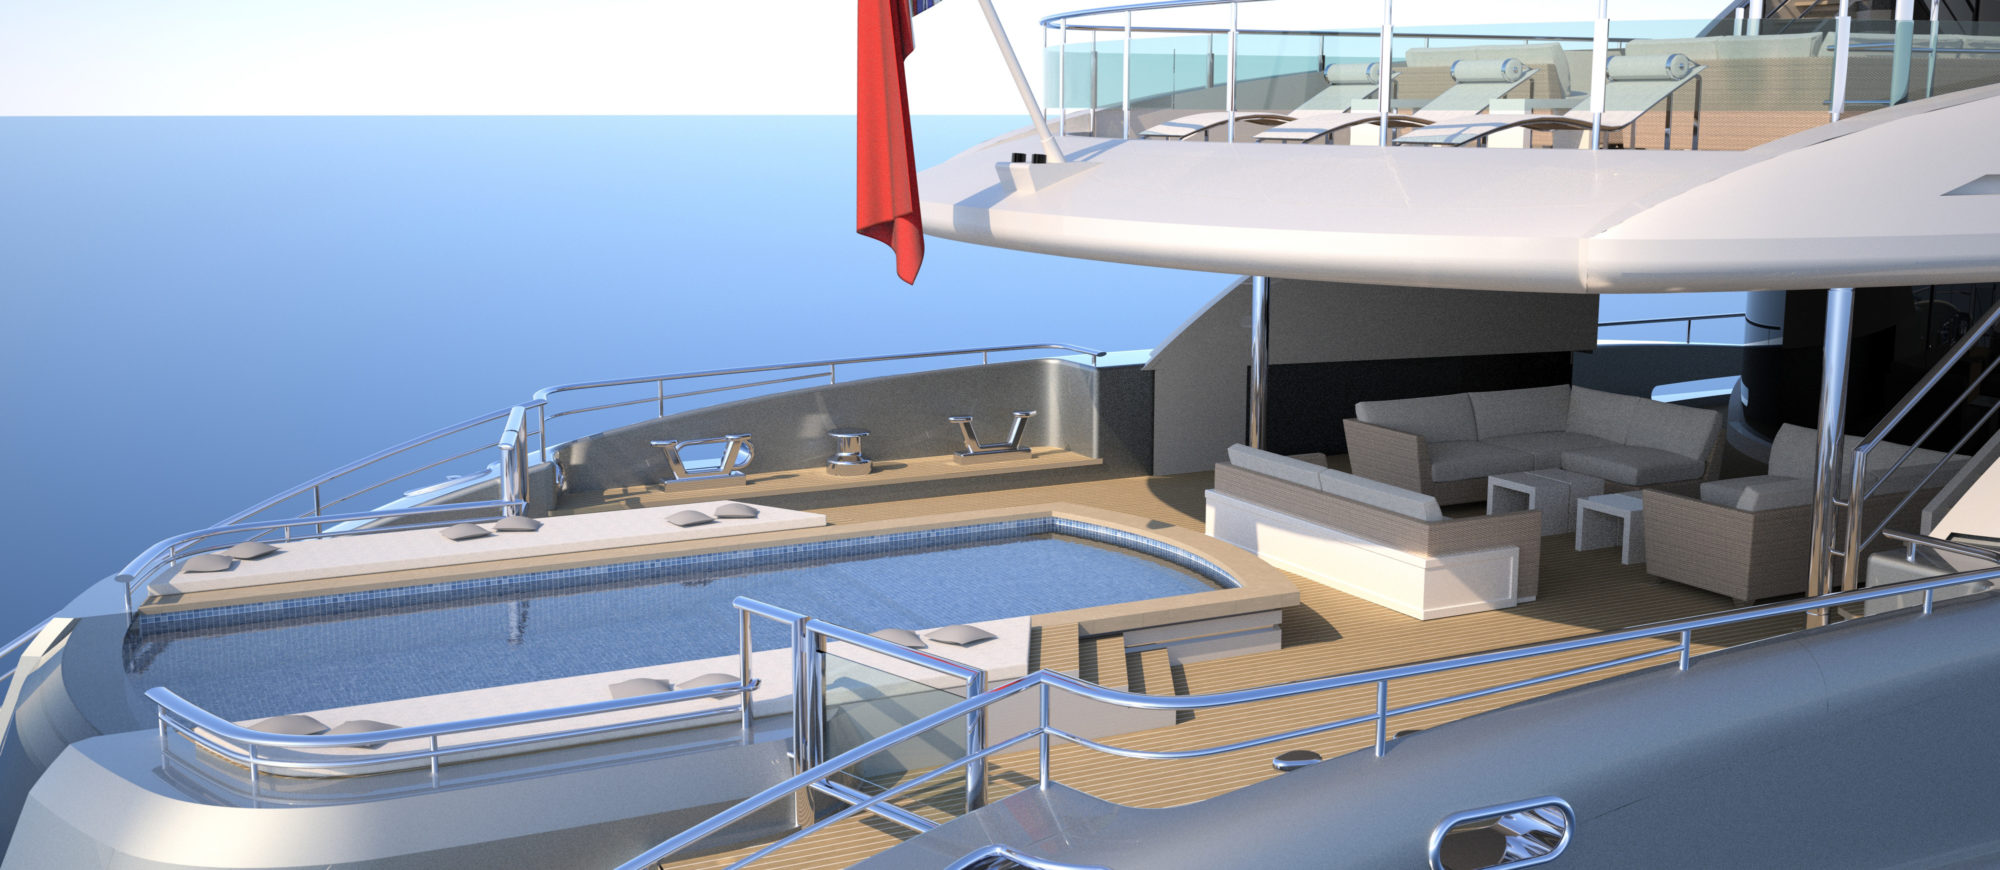 Conrad C233 Superyacht Concept Vallicelli Visualisation Main Deck 3